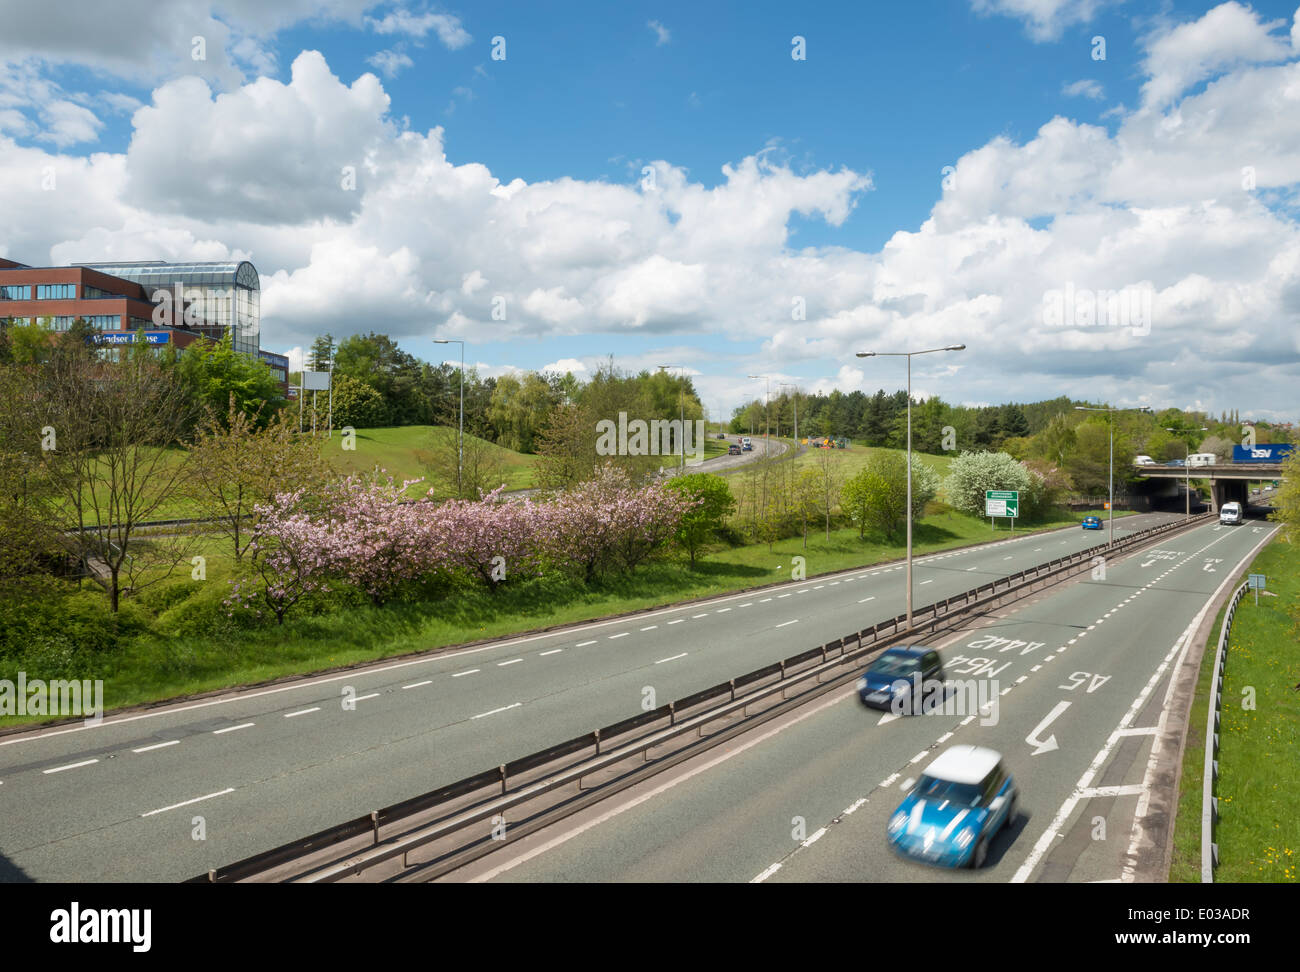 Queensway dual carriageway, Telford Town Centre. - Stock Image